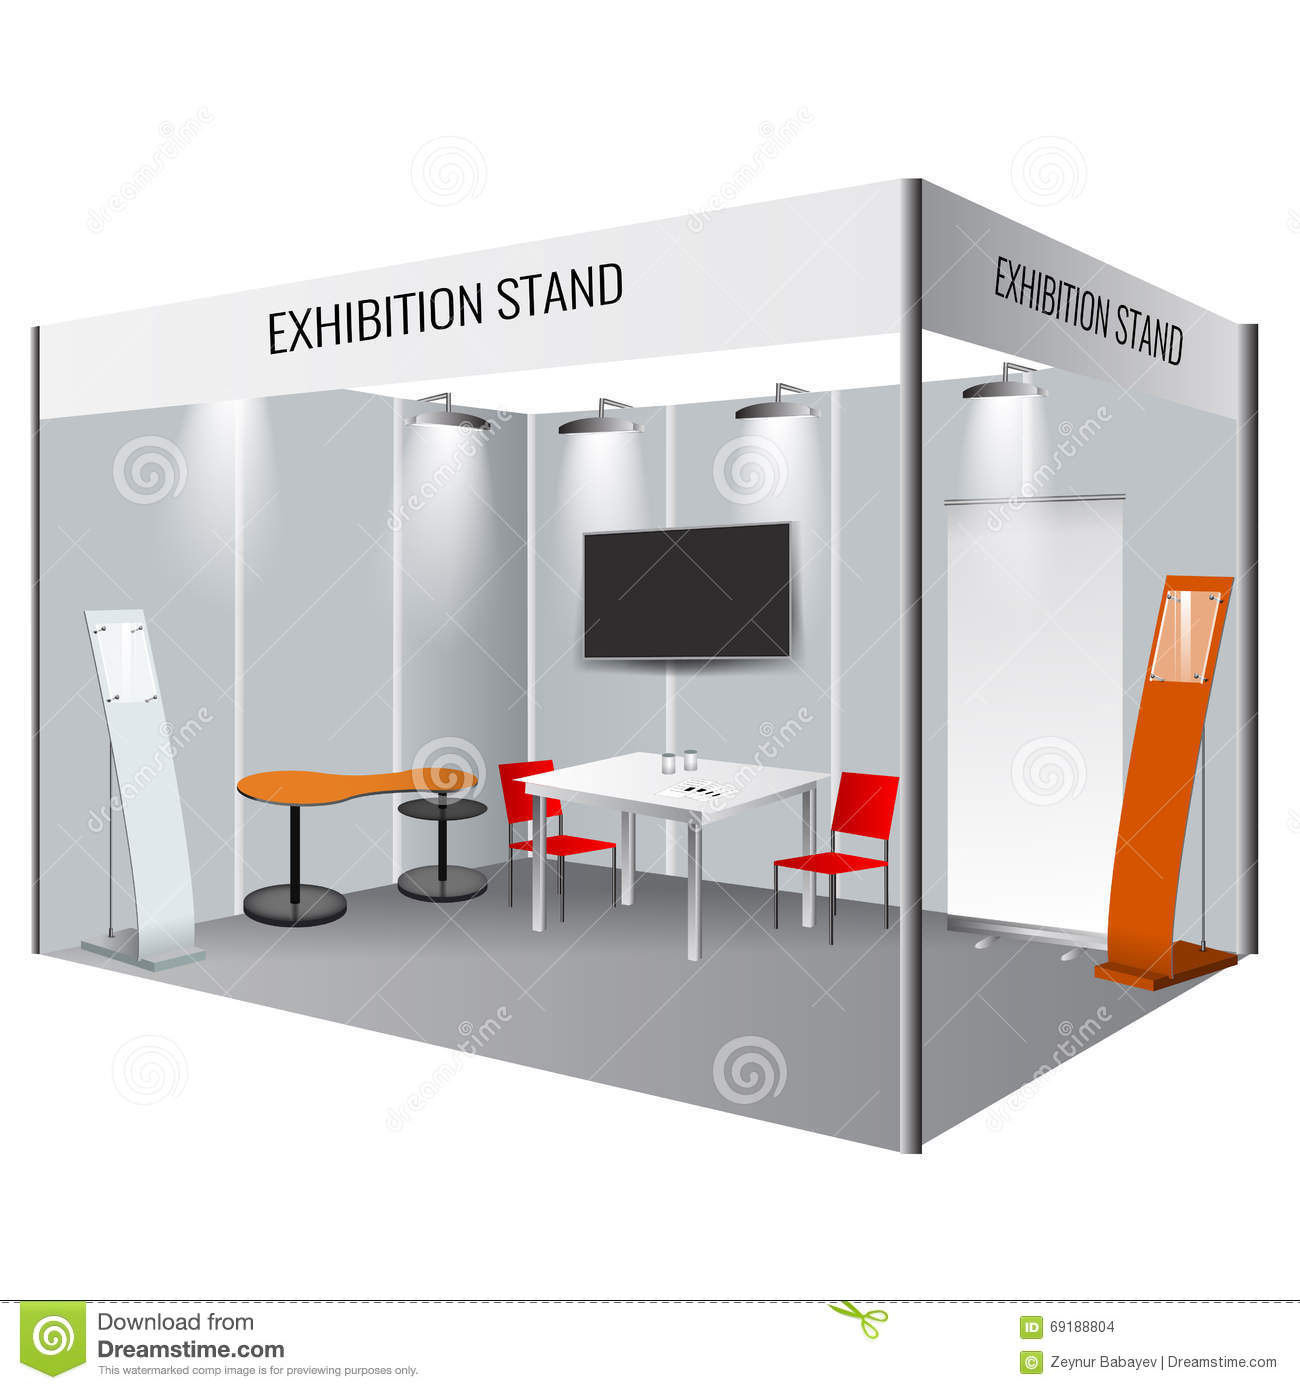 Exhibition Stand Design Mockup Free Download : Creative exhibition stand design booth template